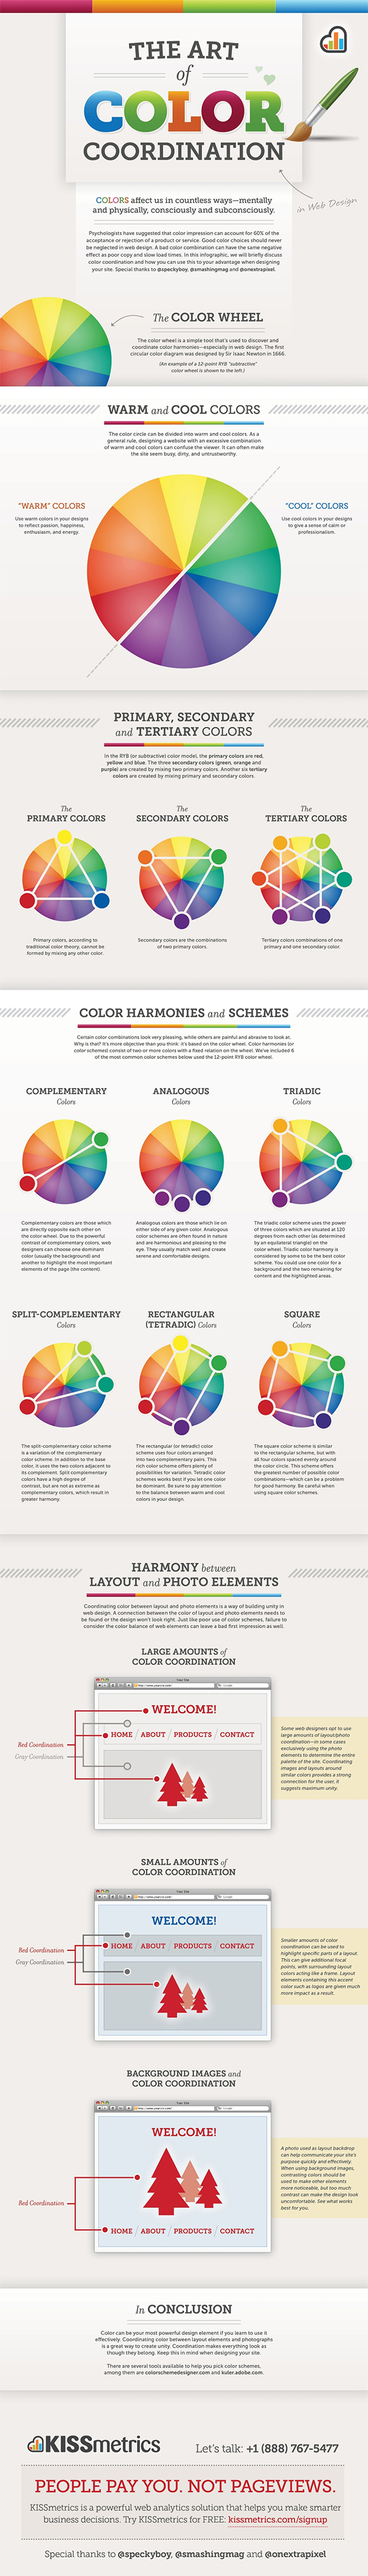 Colour Coordination How to Avoid Using the Wrong Colour Scheme on Your Website